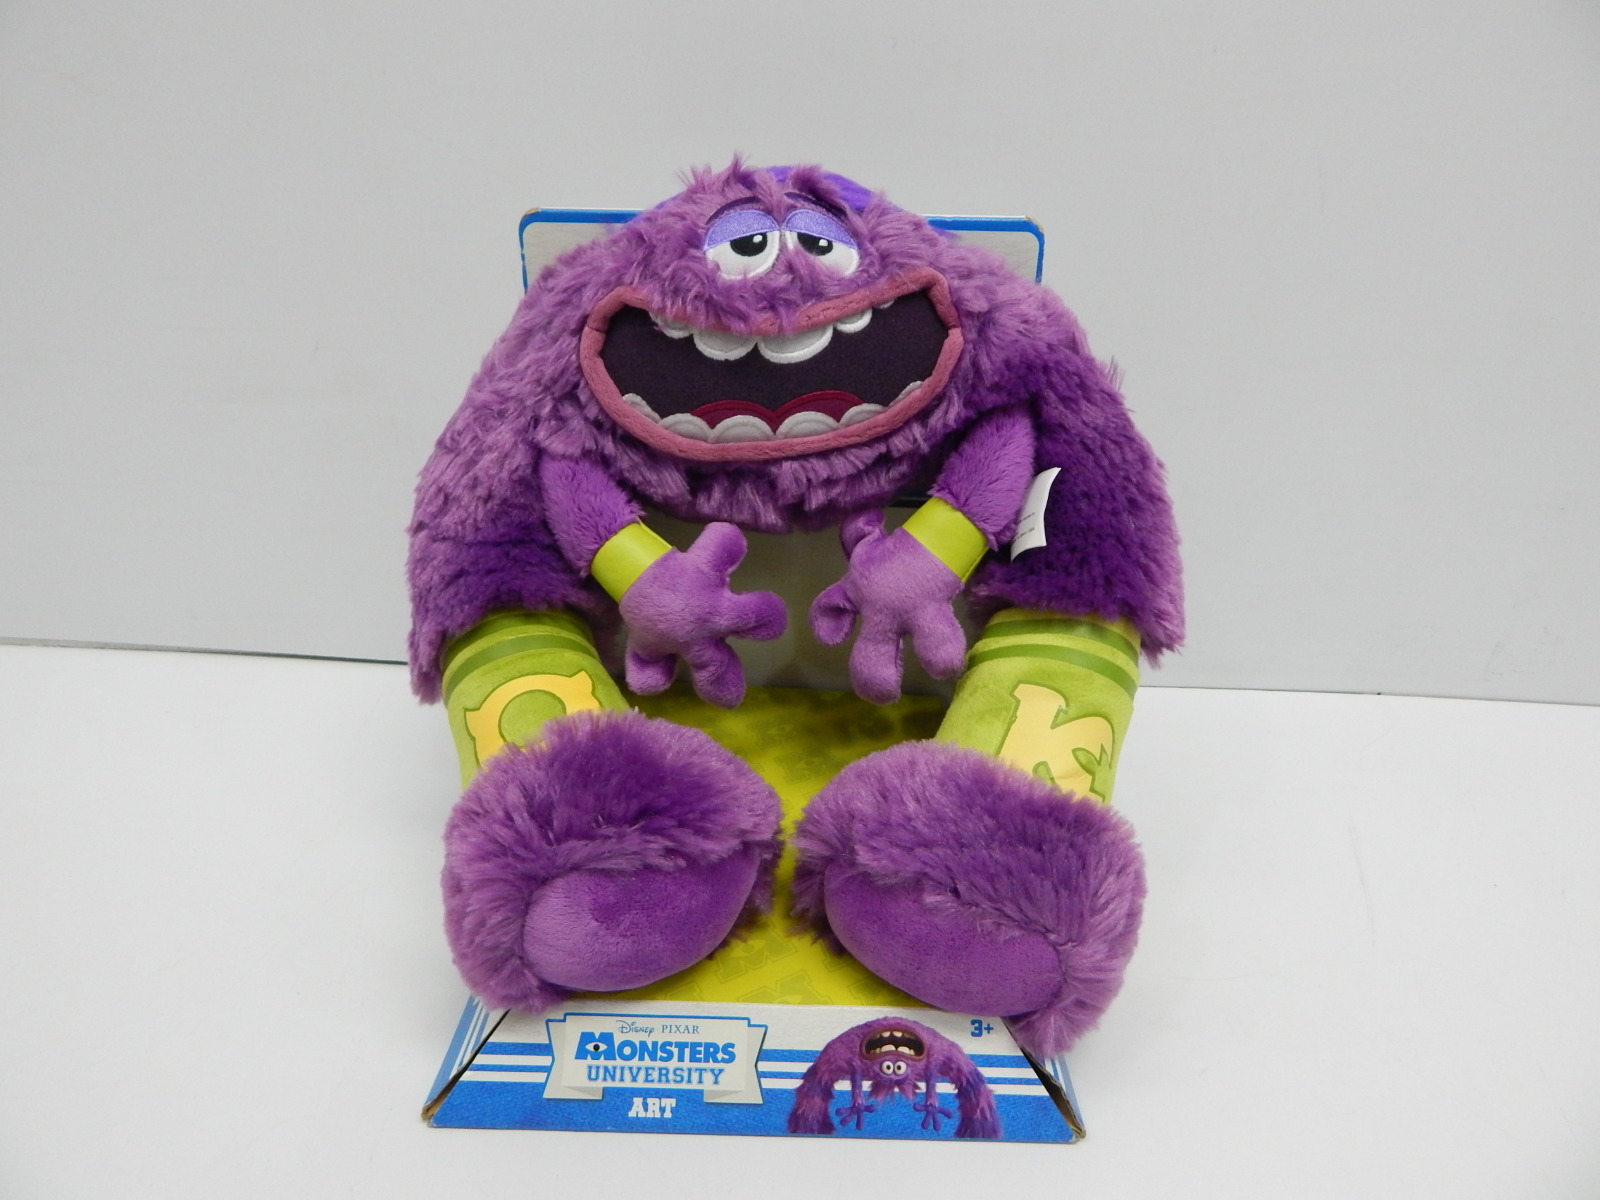 Disney 23550 Monsters Inc University Art 13 Purple Plush Toy Medium 2ndchancesales